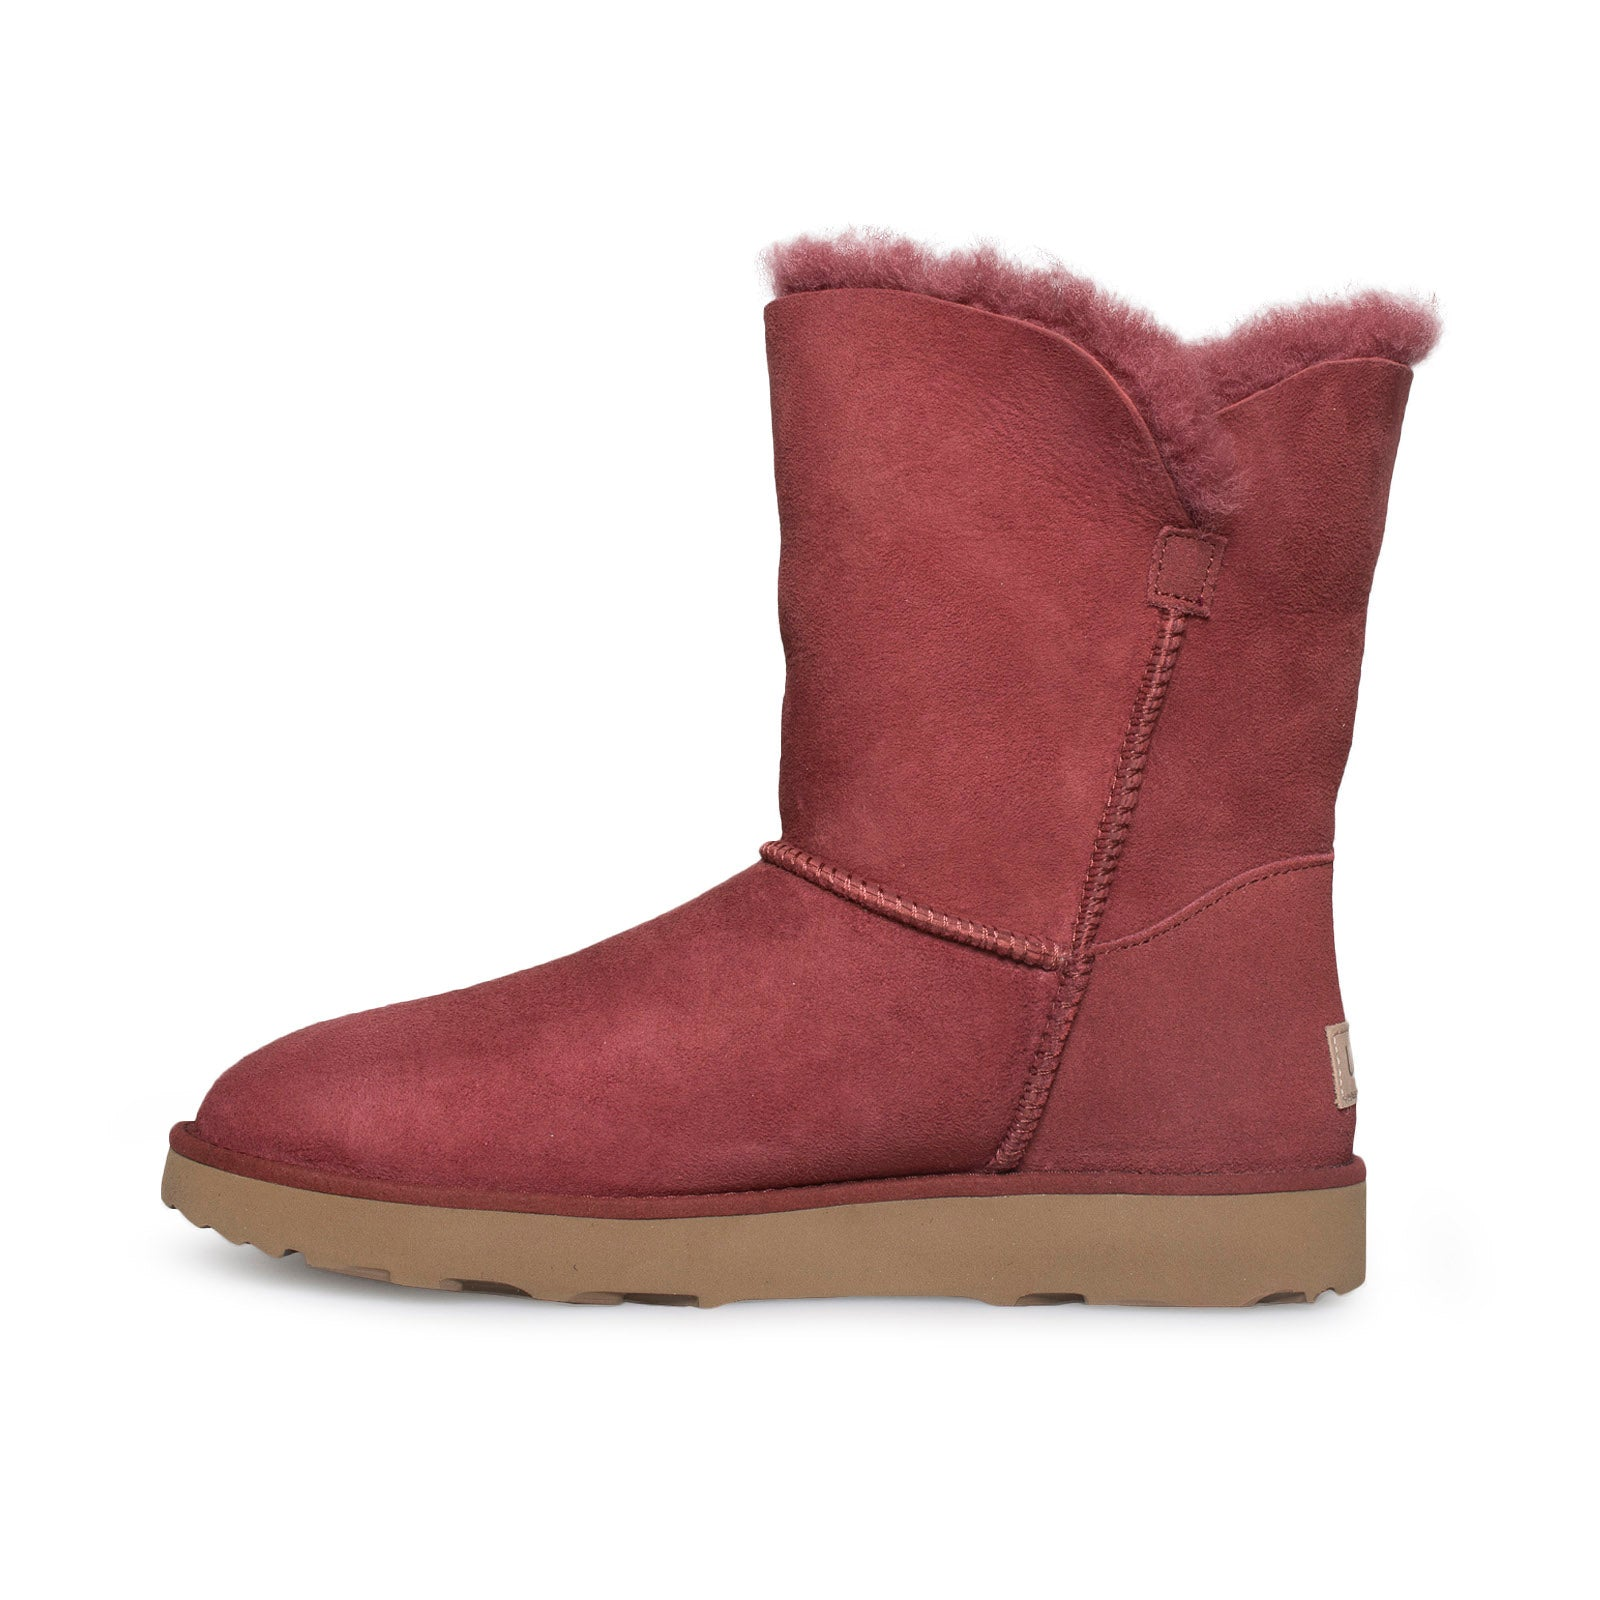 f86a46809d8 UGG Classic Cuff Short Red Clay Boots